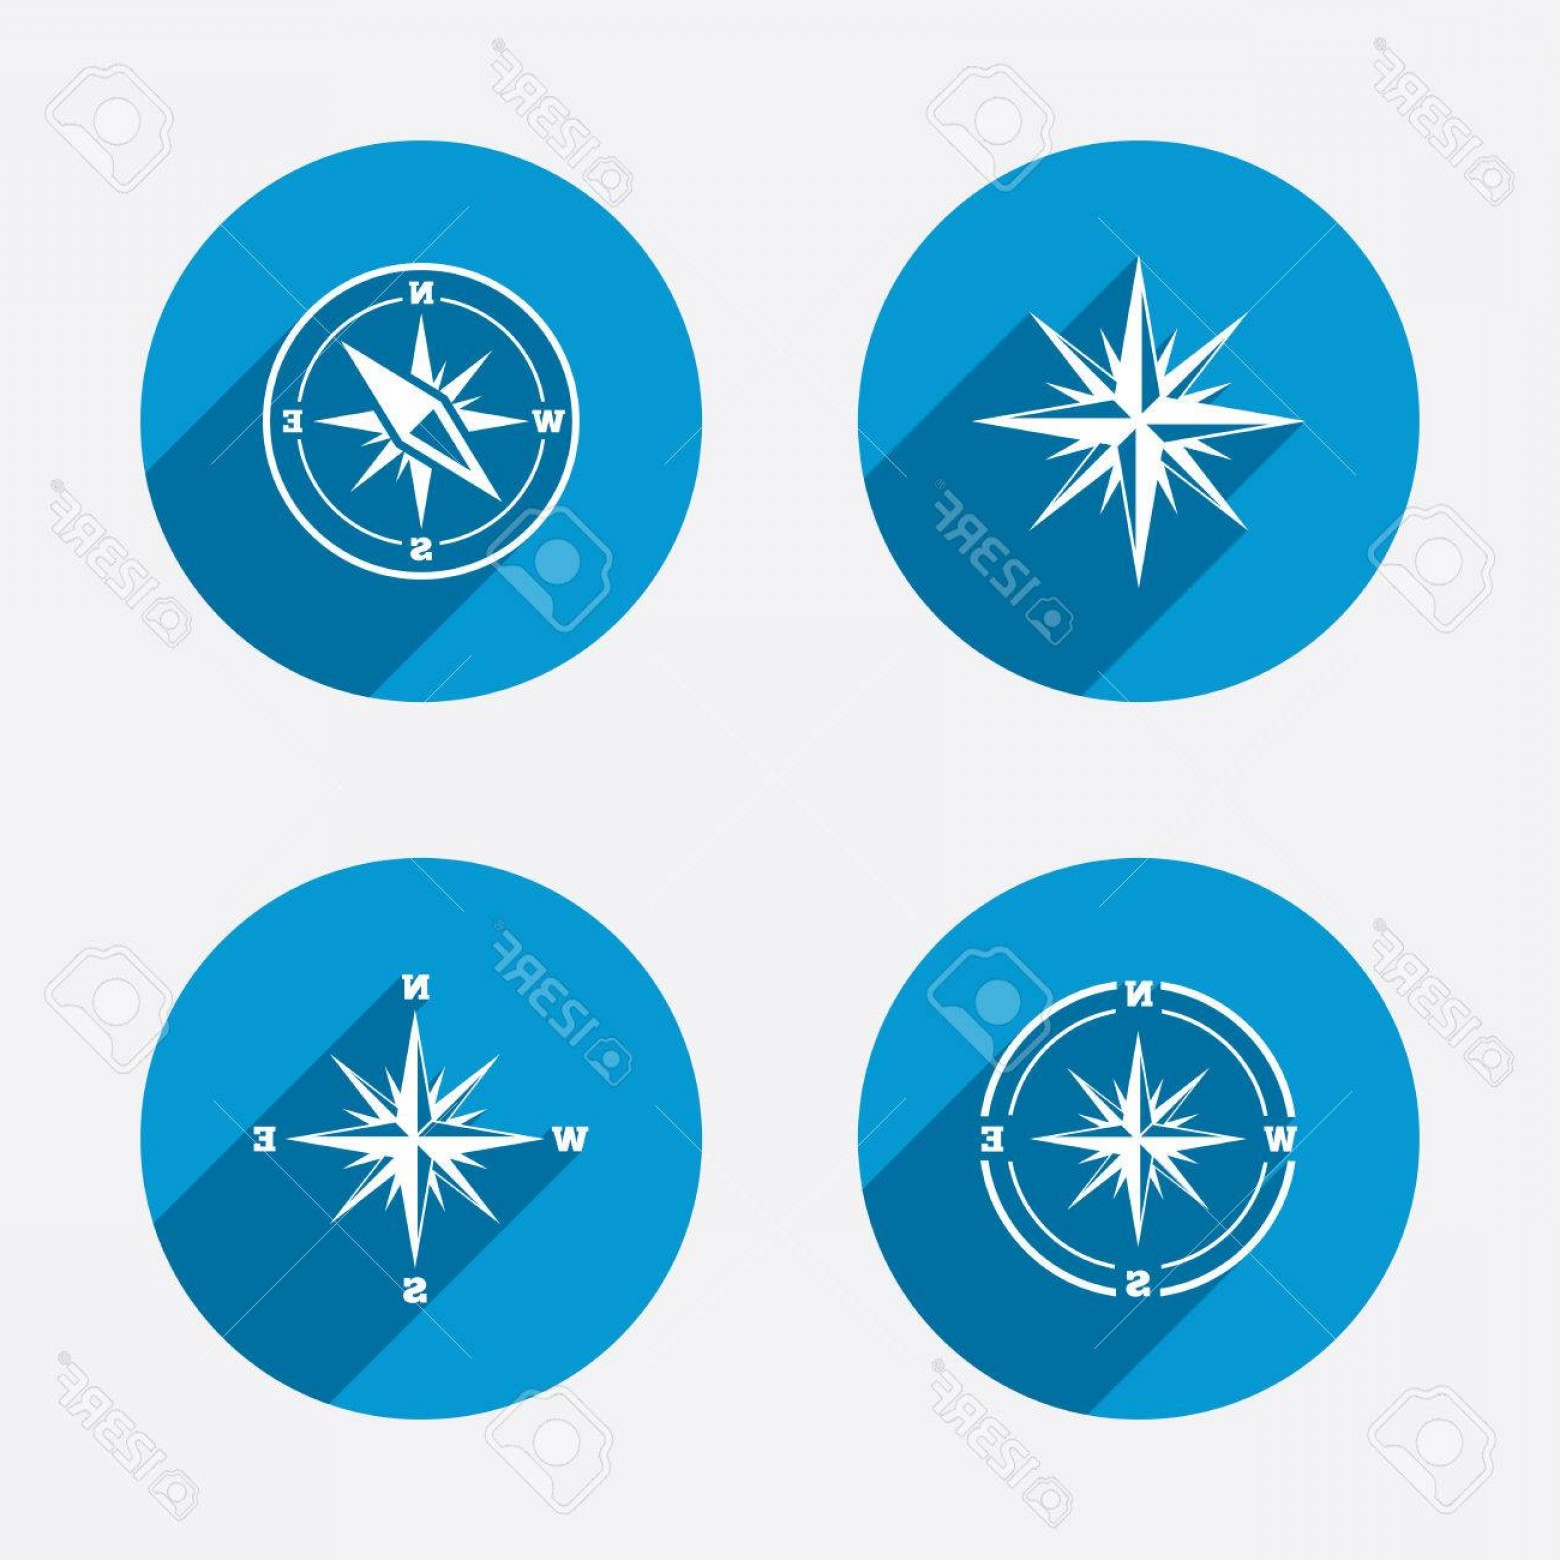 Buttons Vector Art: Photostock Vector Windrose Navigation Icons Compass Symbols Coordinate System Sign Circle Concept Web Buttons Vector